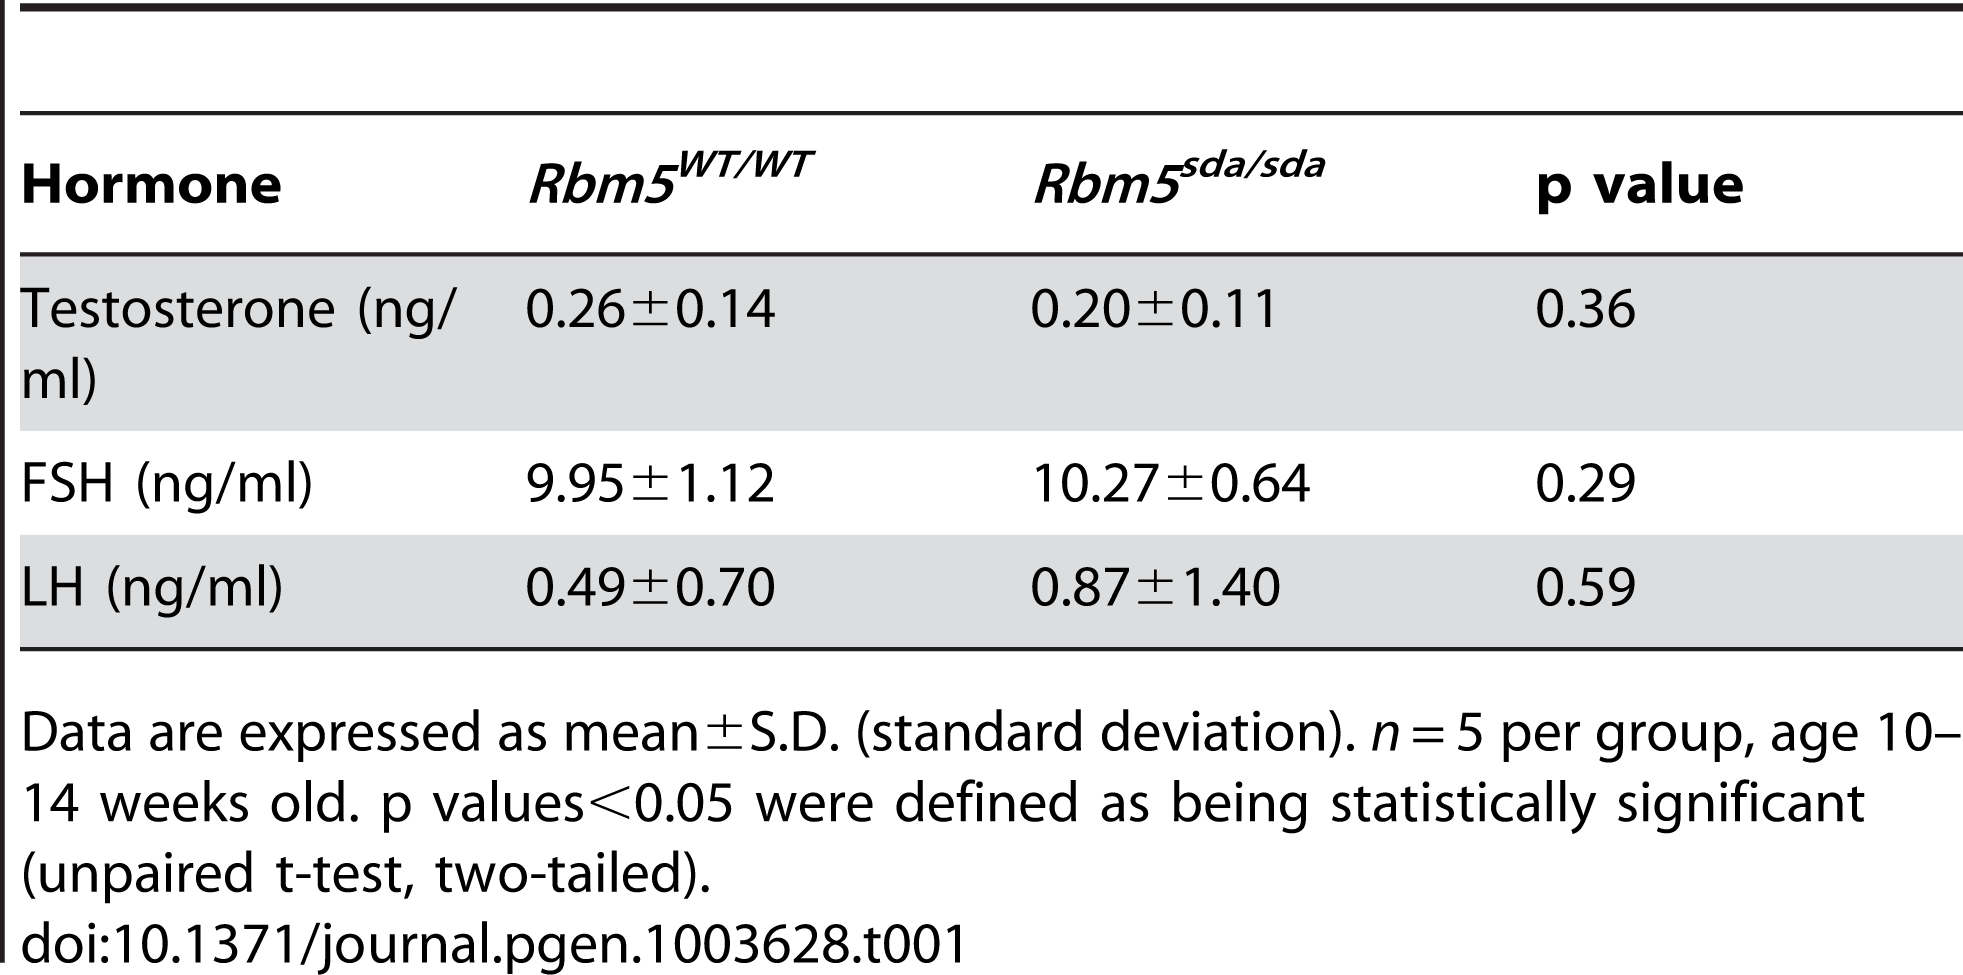 Levels of serum testosterone, FSH and LH in adult <i>Rbm5<sup>sda/sda</sup></i> and <i>Rbm5<sup>WT/WT</sup></i> mice.